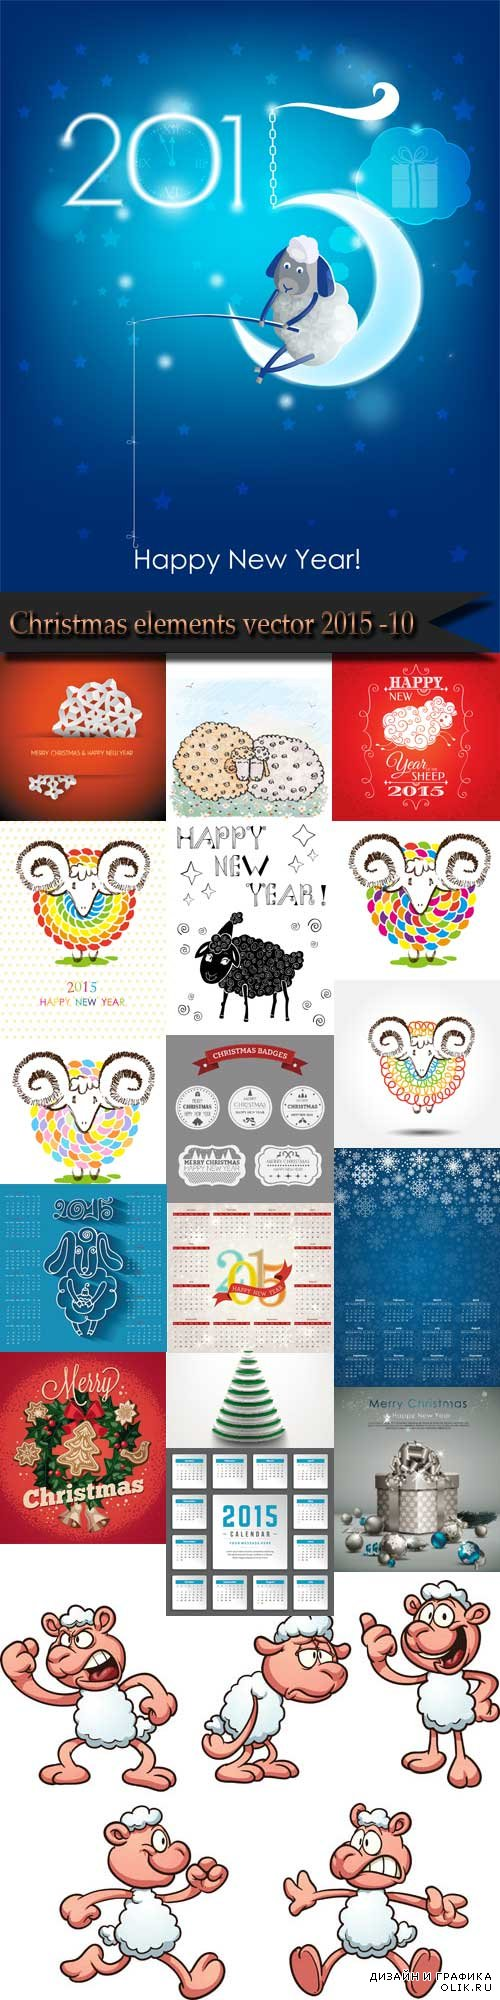 Christmas elements vector 2015 -10